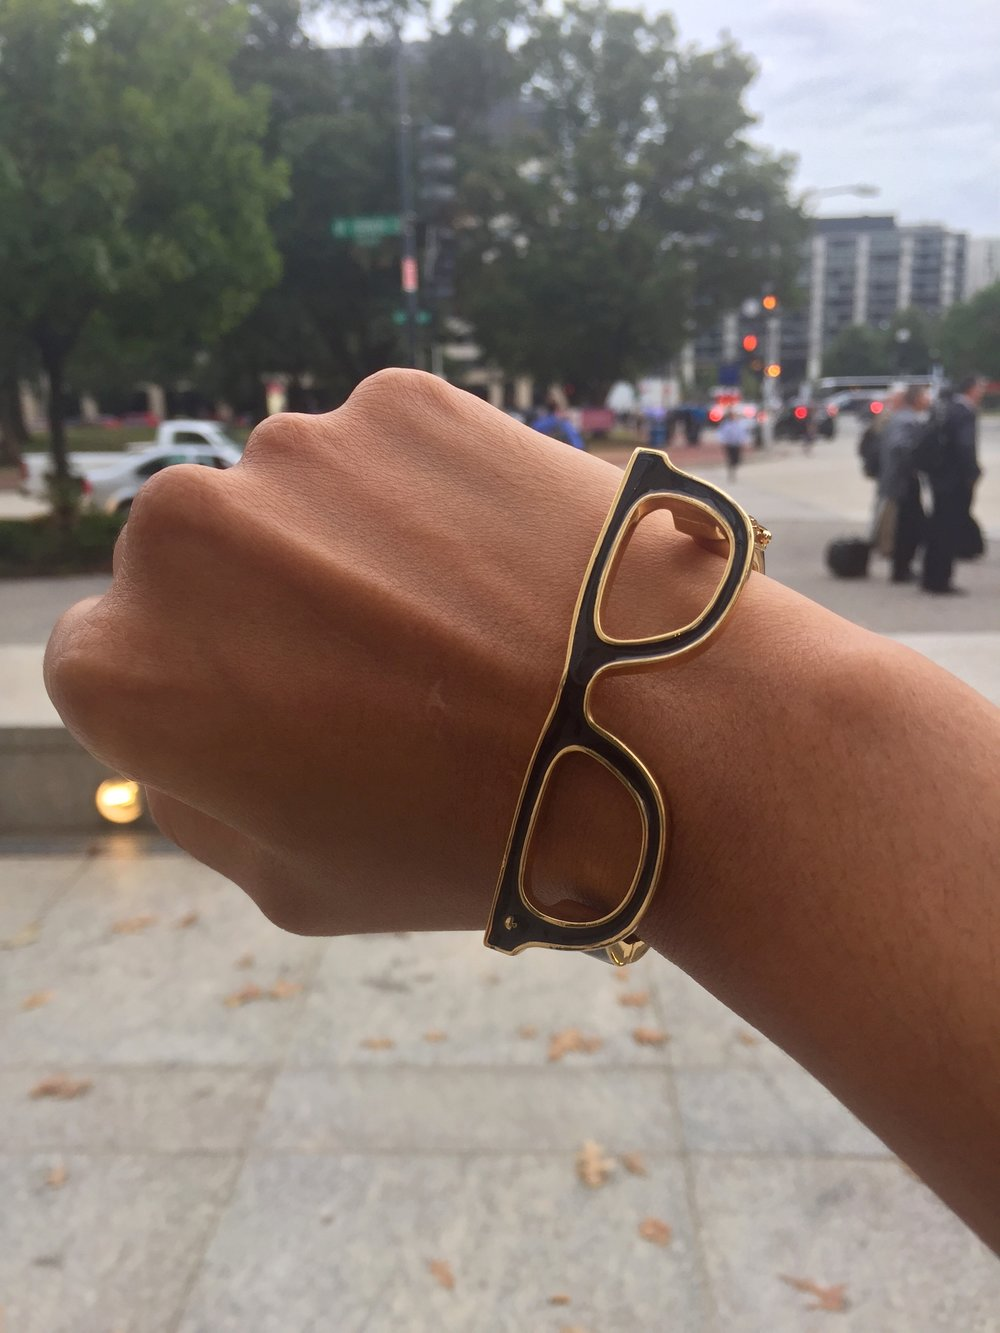 Dra. Swamy with her bespectacled bangle in D.C.